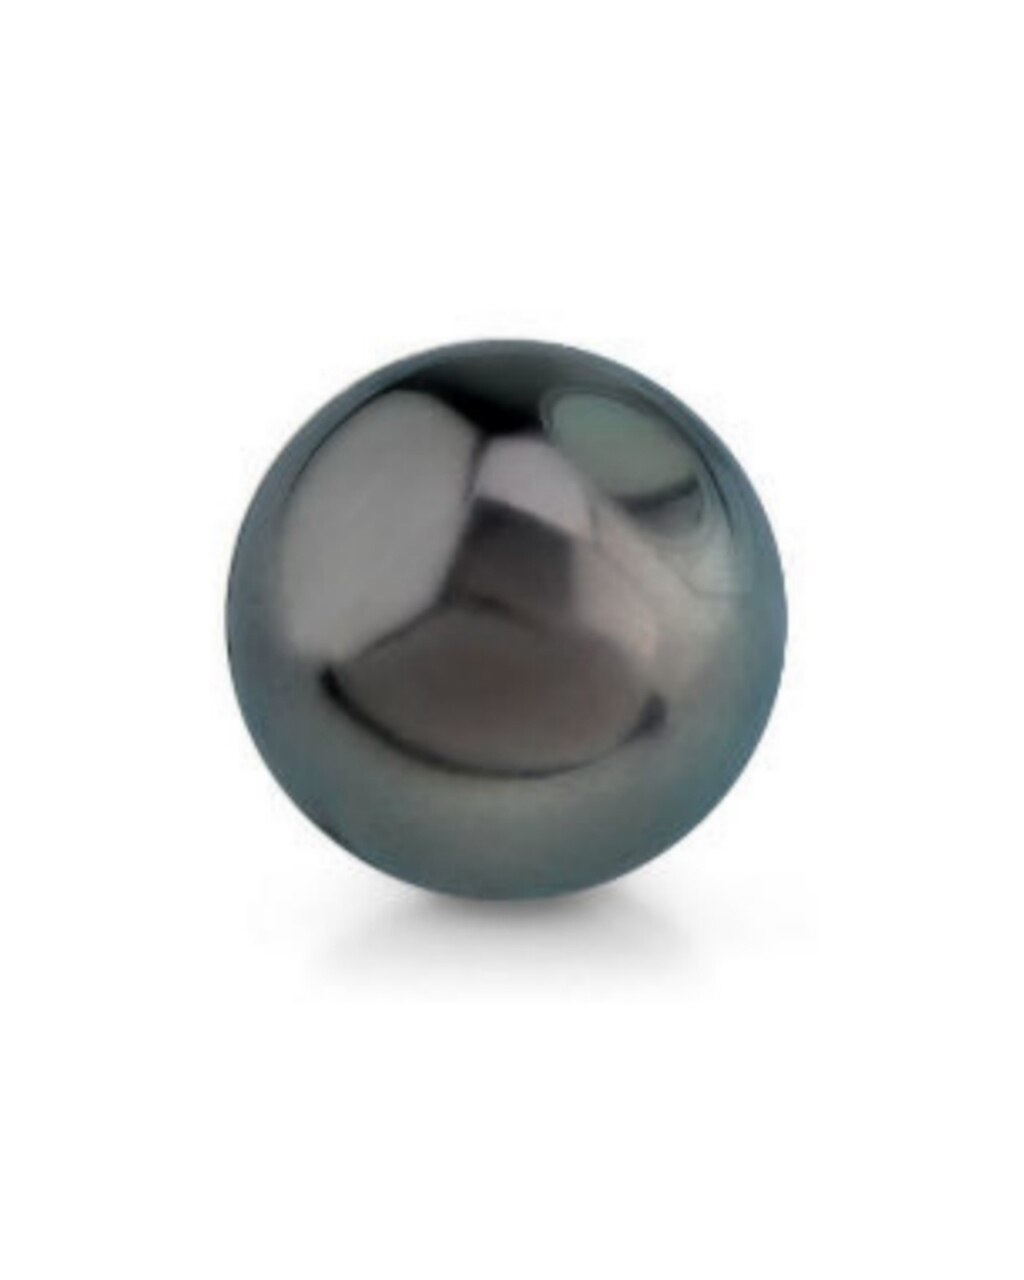 This loose Tahitian South Sea pearl is 12.0mm in size